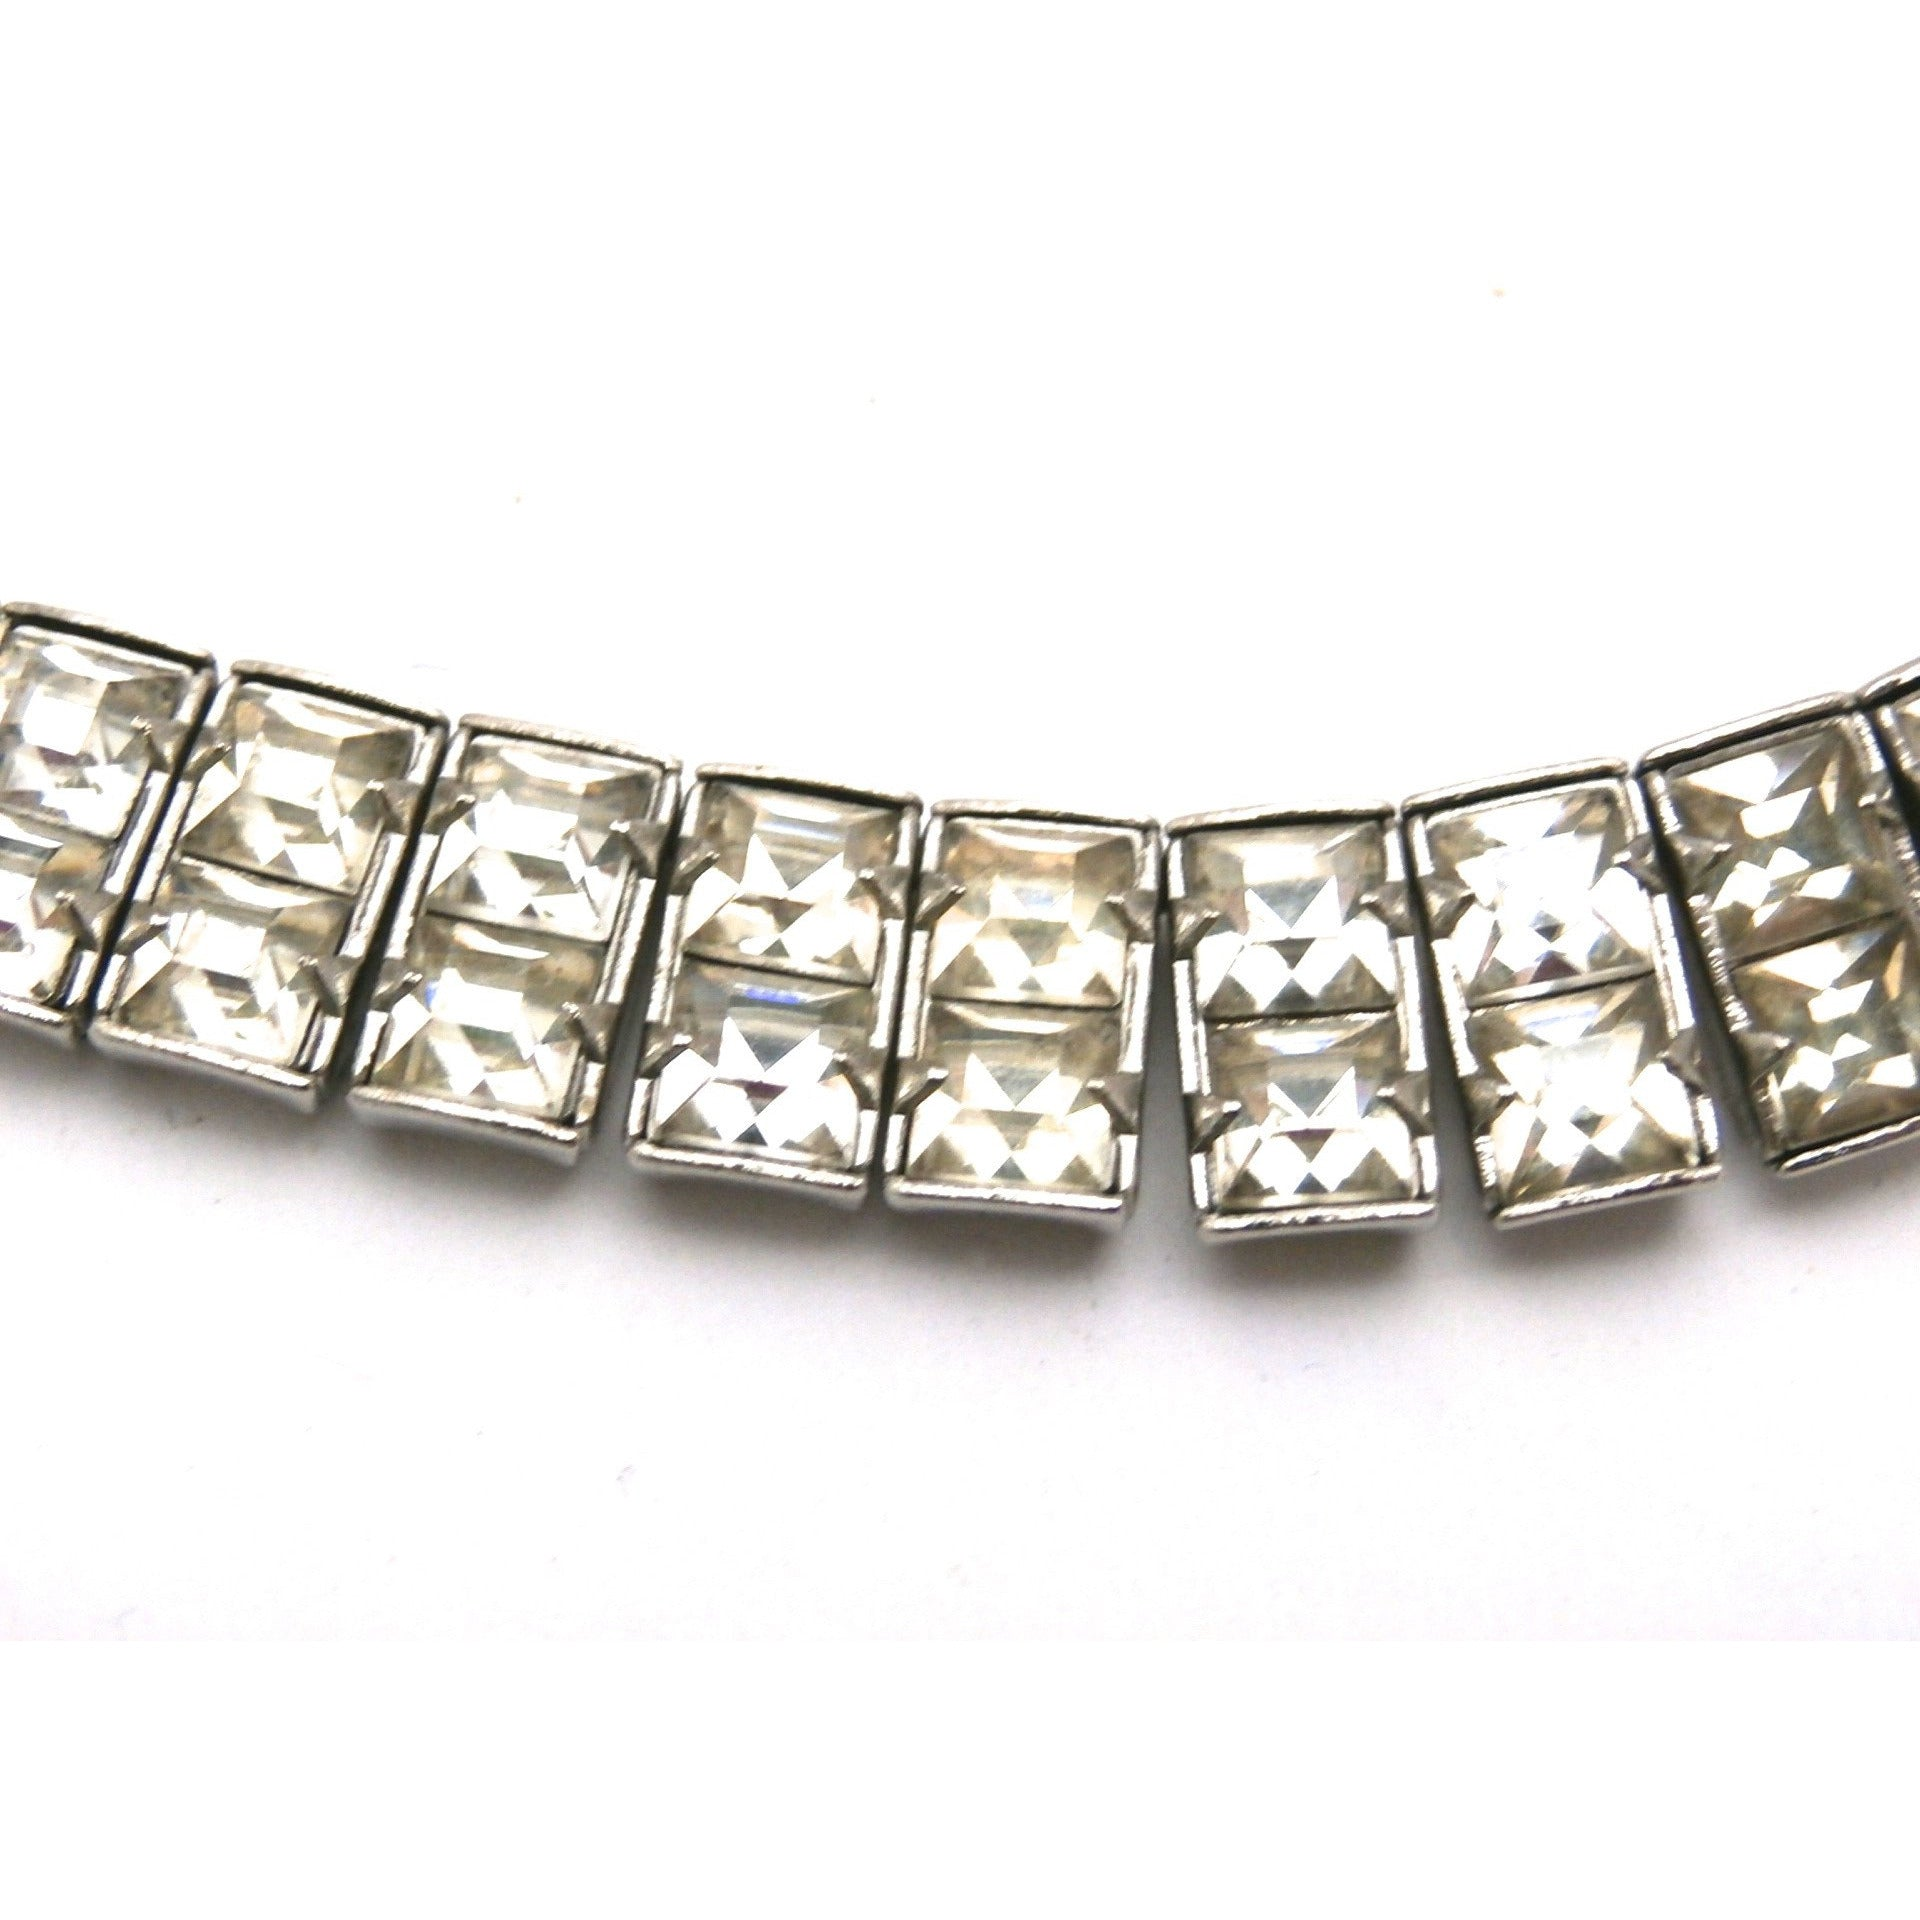 "Vintage Crystal Choker Square Channel Set Stones Double Row 14"" 1940s - The Best Vintage Clothing  - 1"